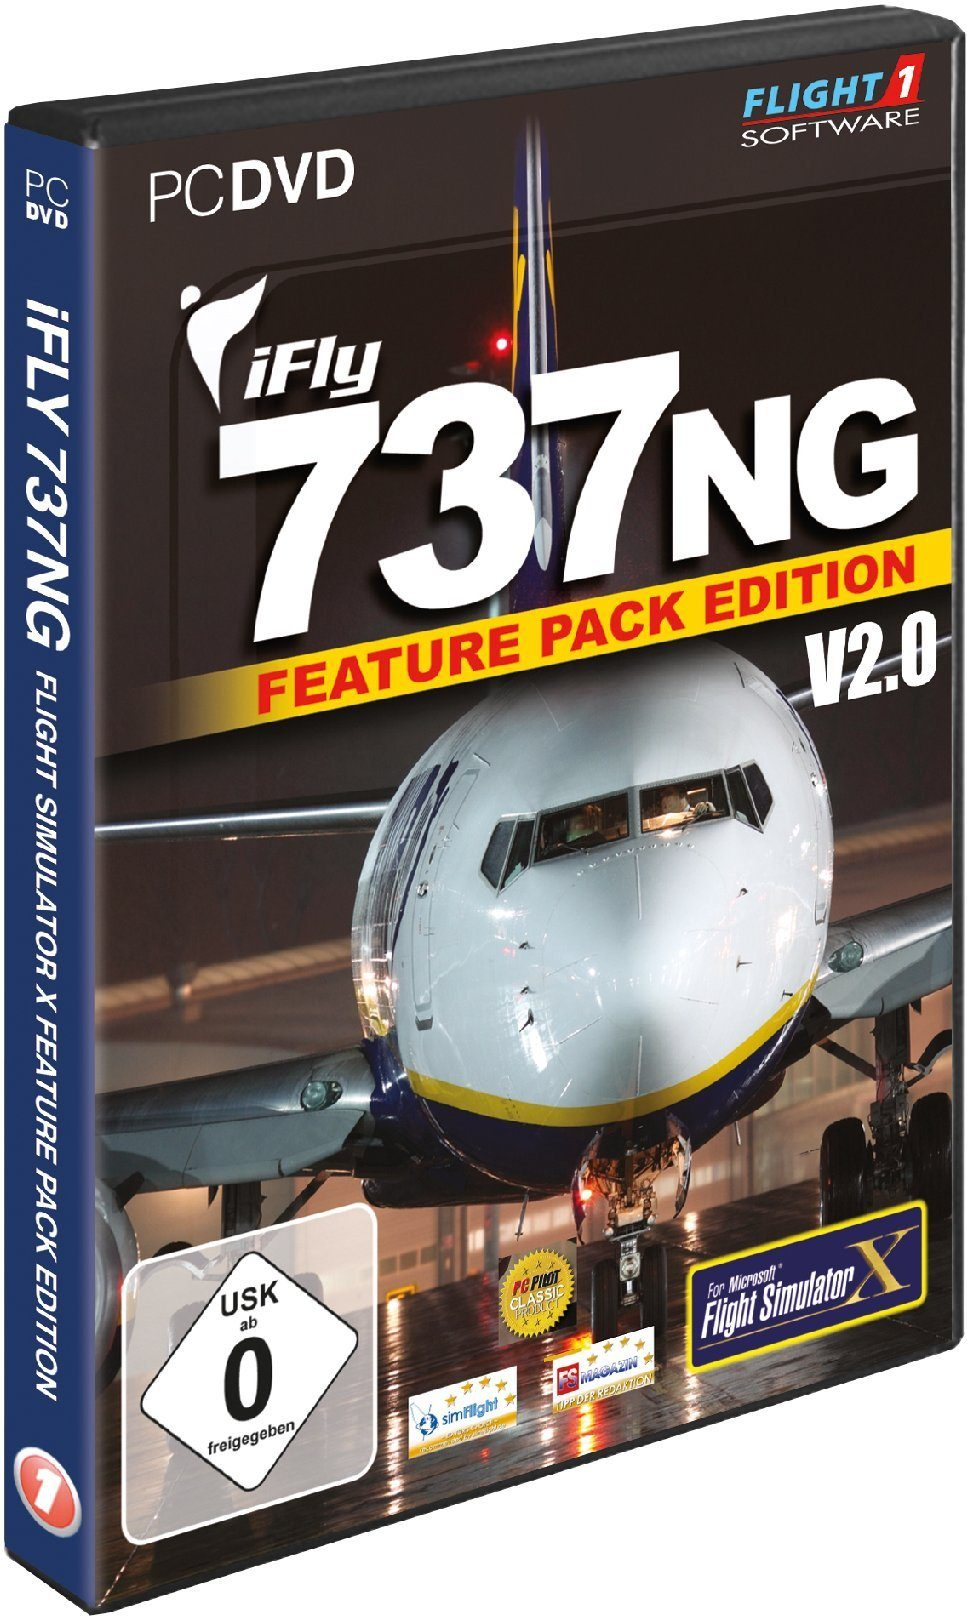 NBG Addon Best of FSX iFly 737 NG »PC«